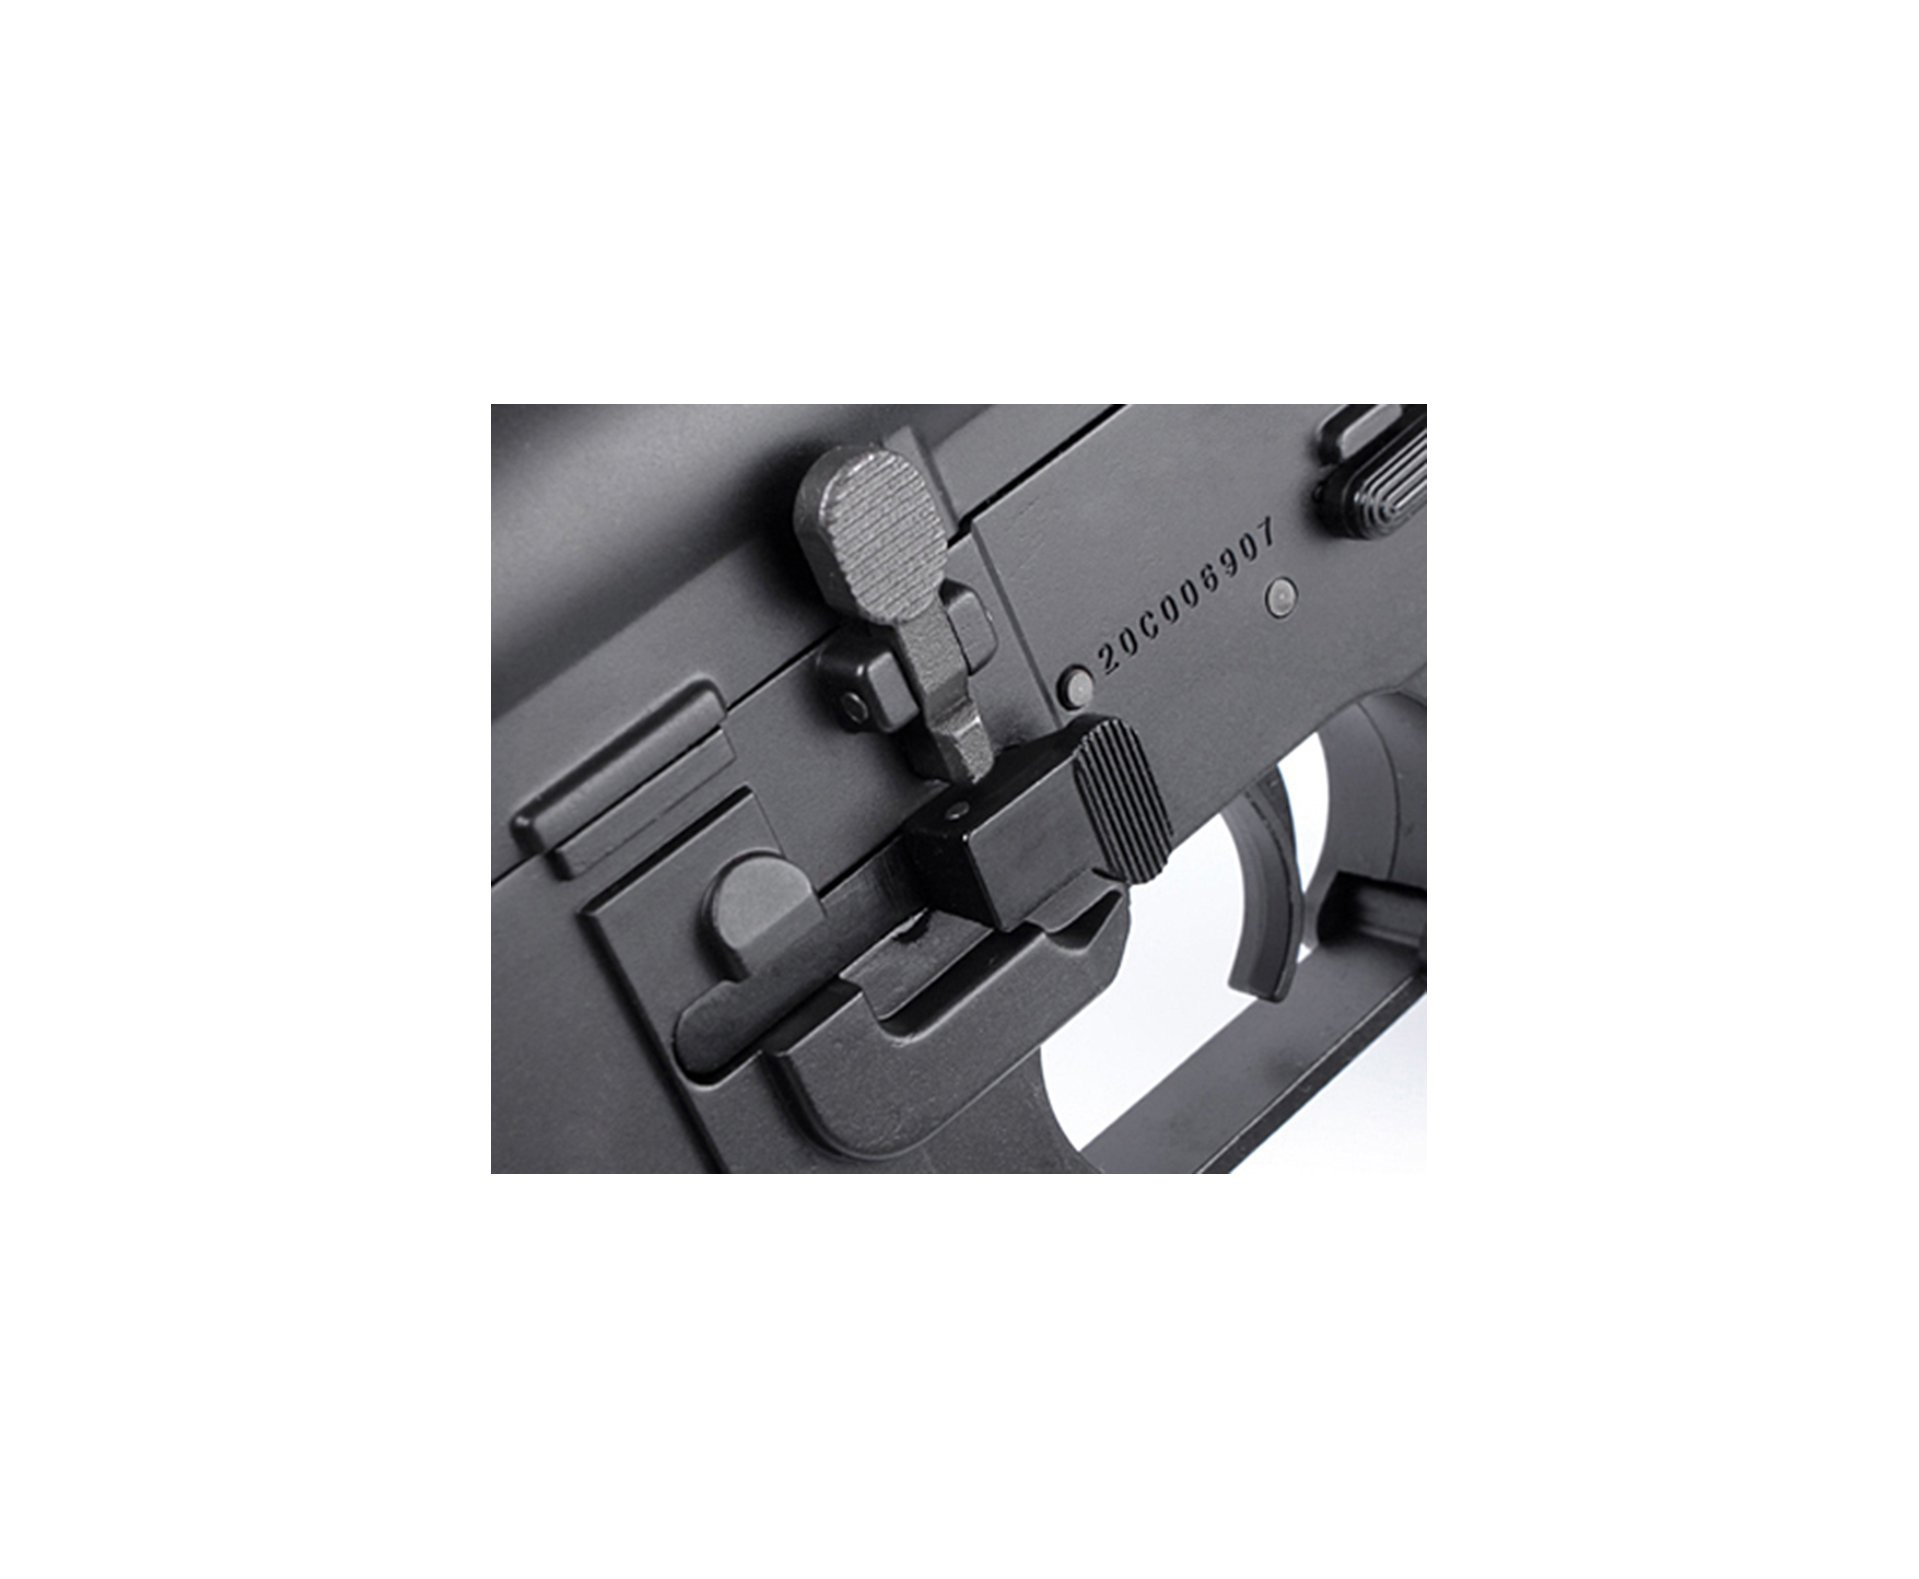 Rifle De Airsoft Sig Sauer 516 Pdw Full Metal - Cal 6.0mm - King Arms